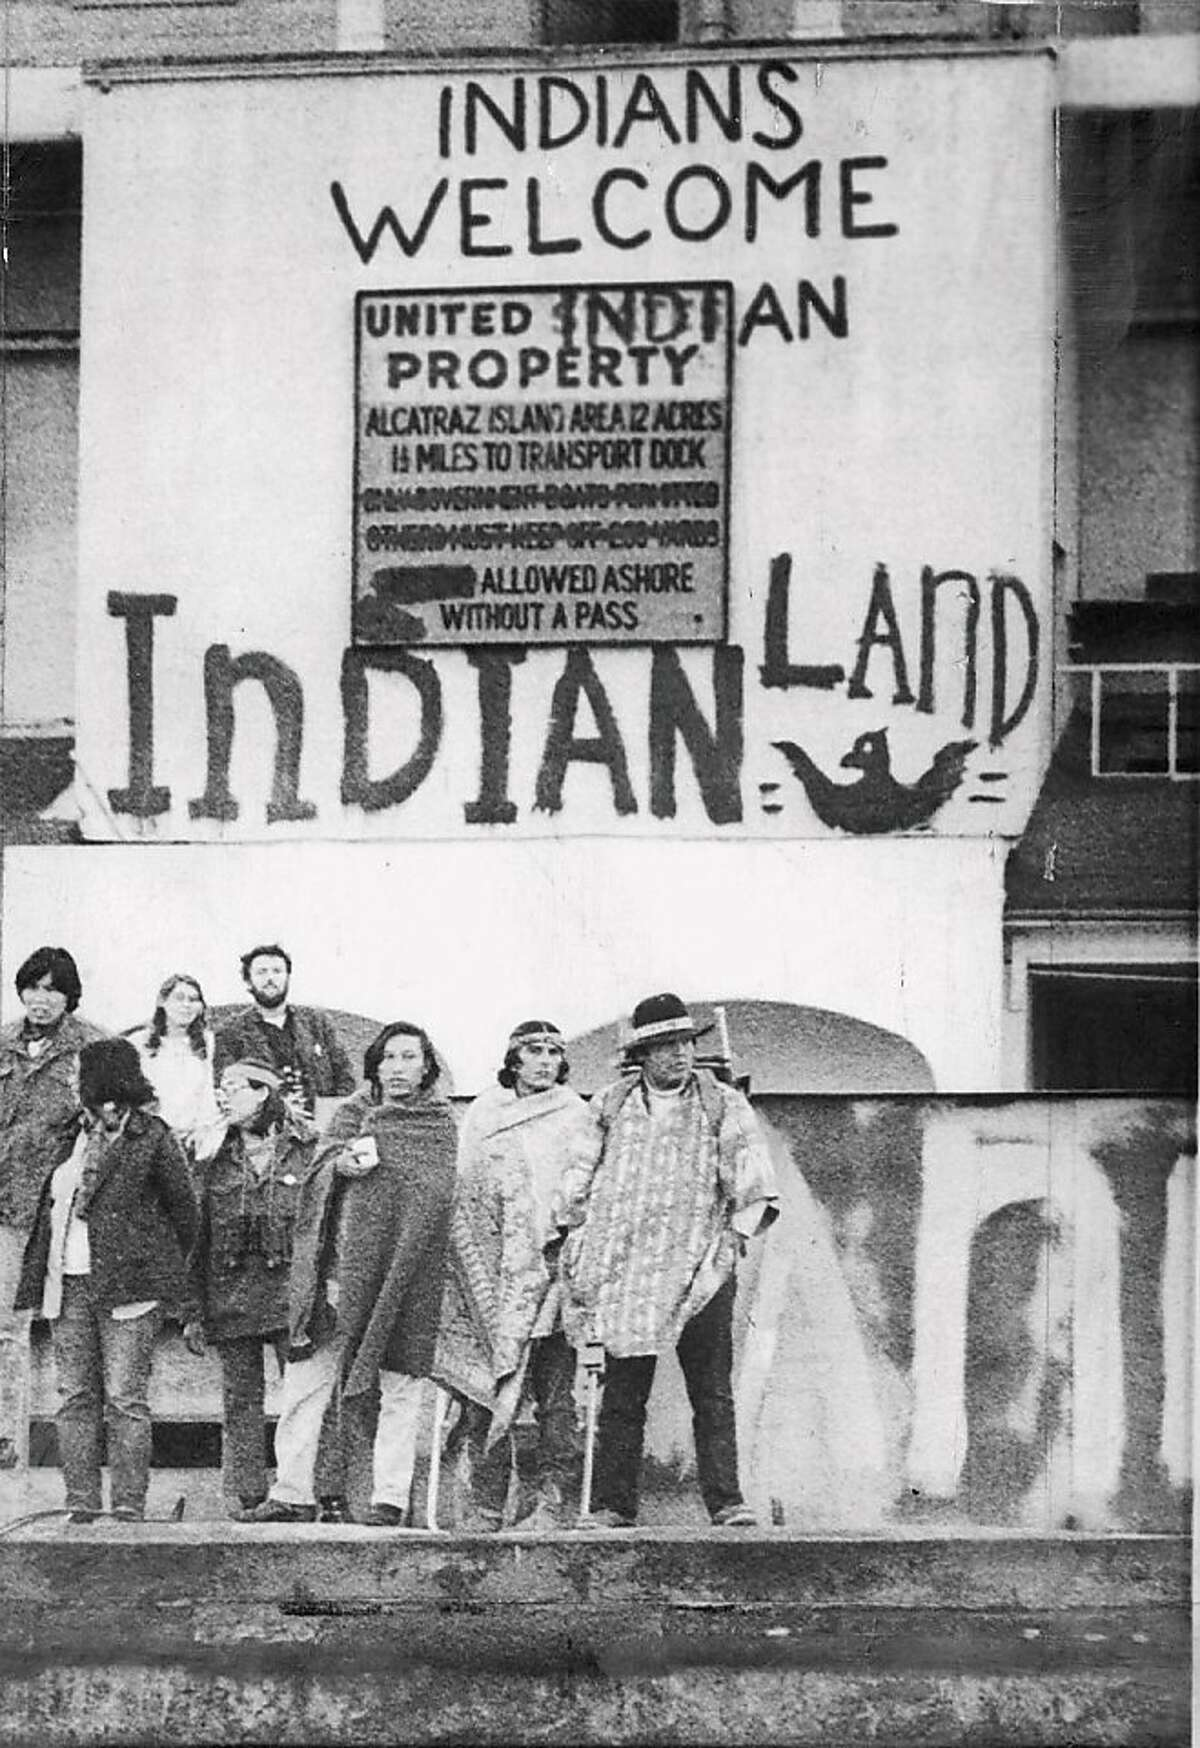 Alcatraz was taken over by American Indians in 1969 and drew 10,000 to 15,000 Indians during a 19-month period.